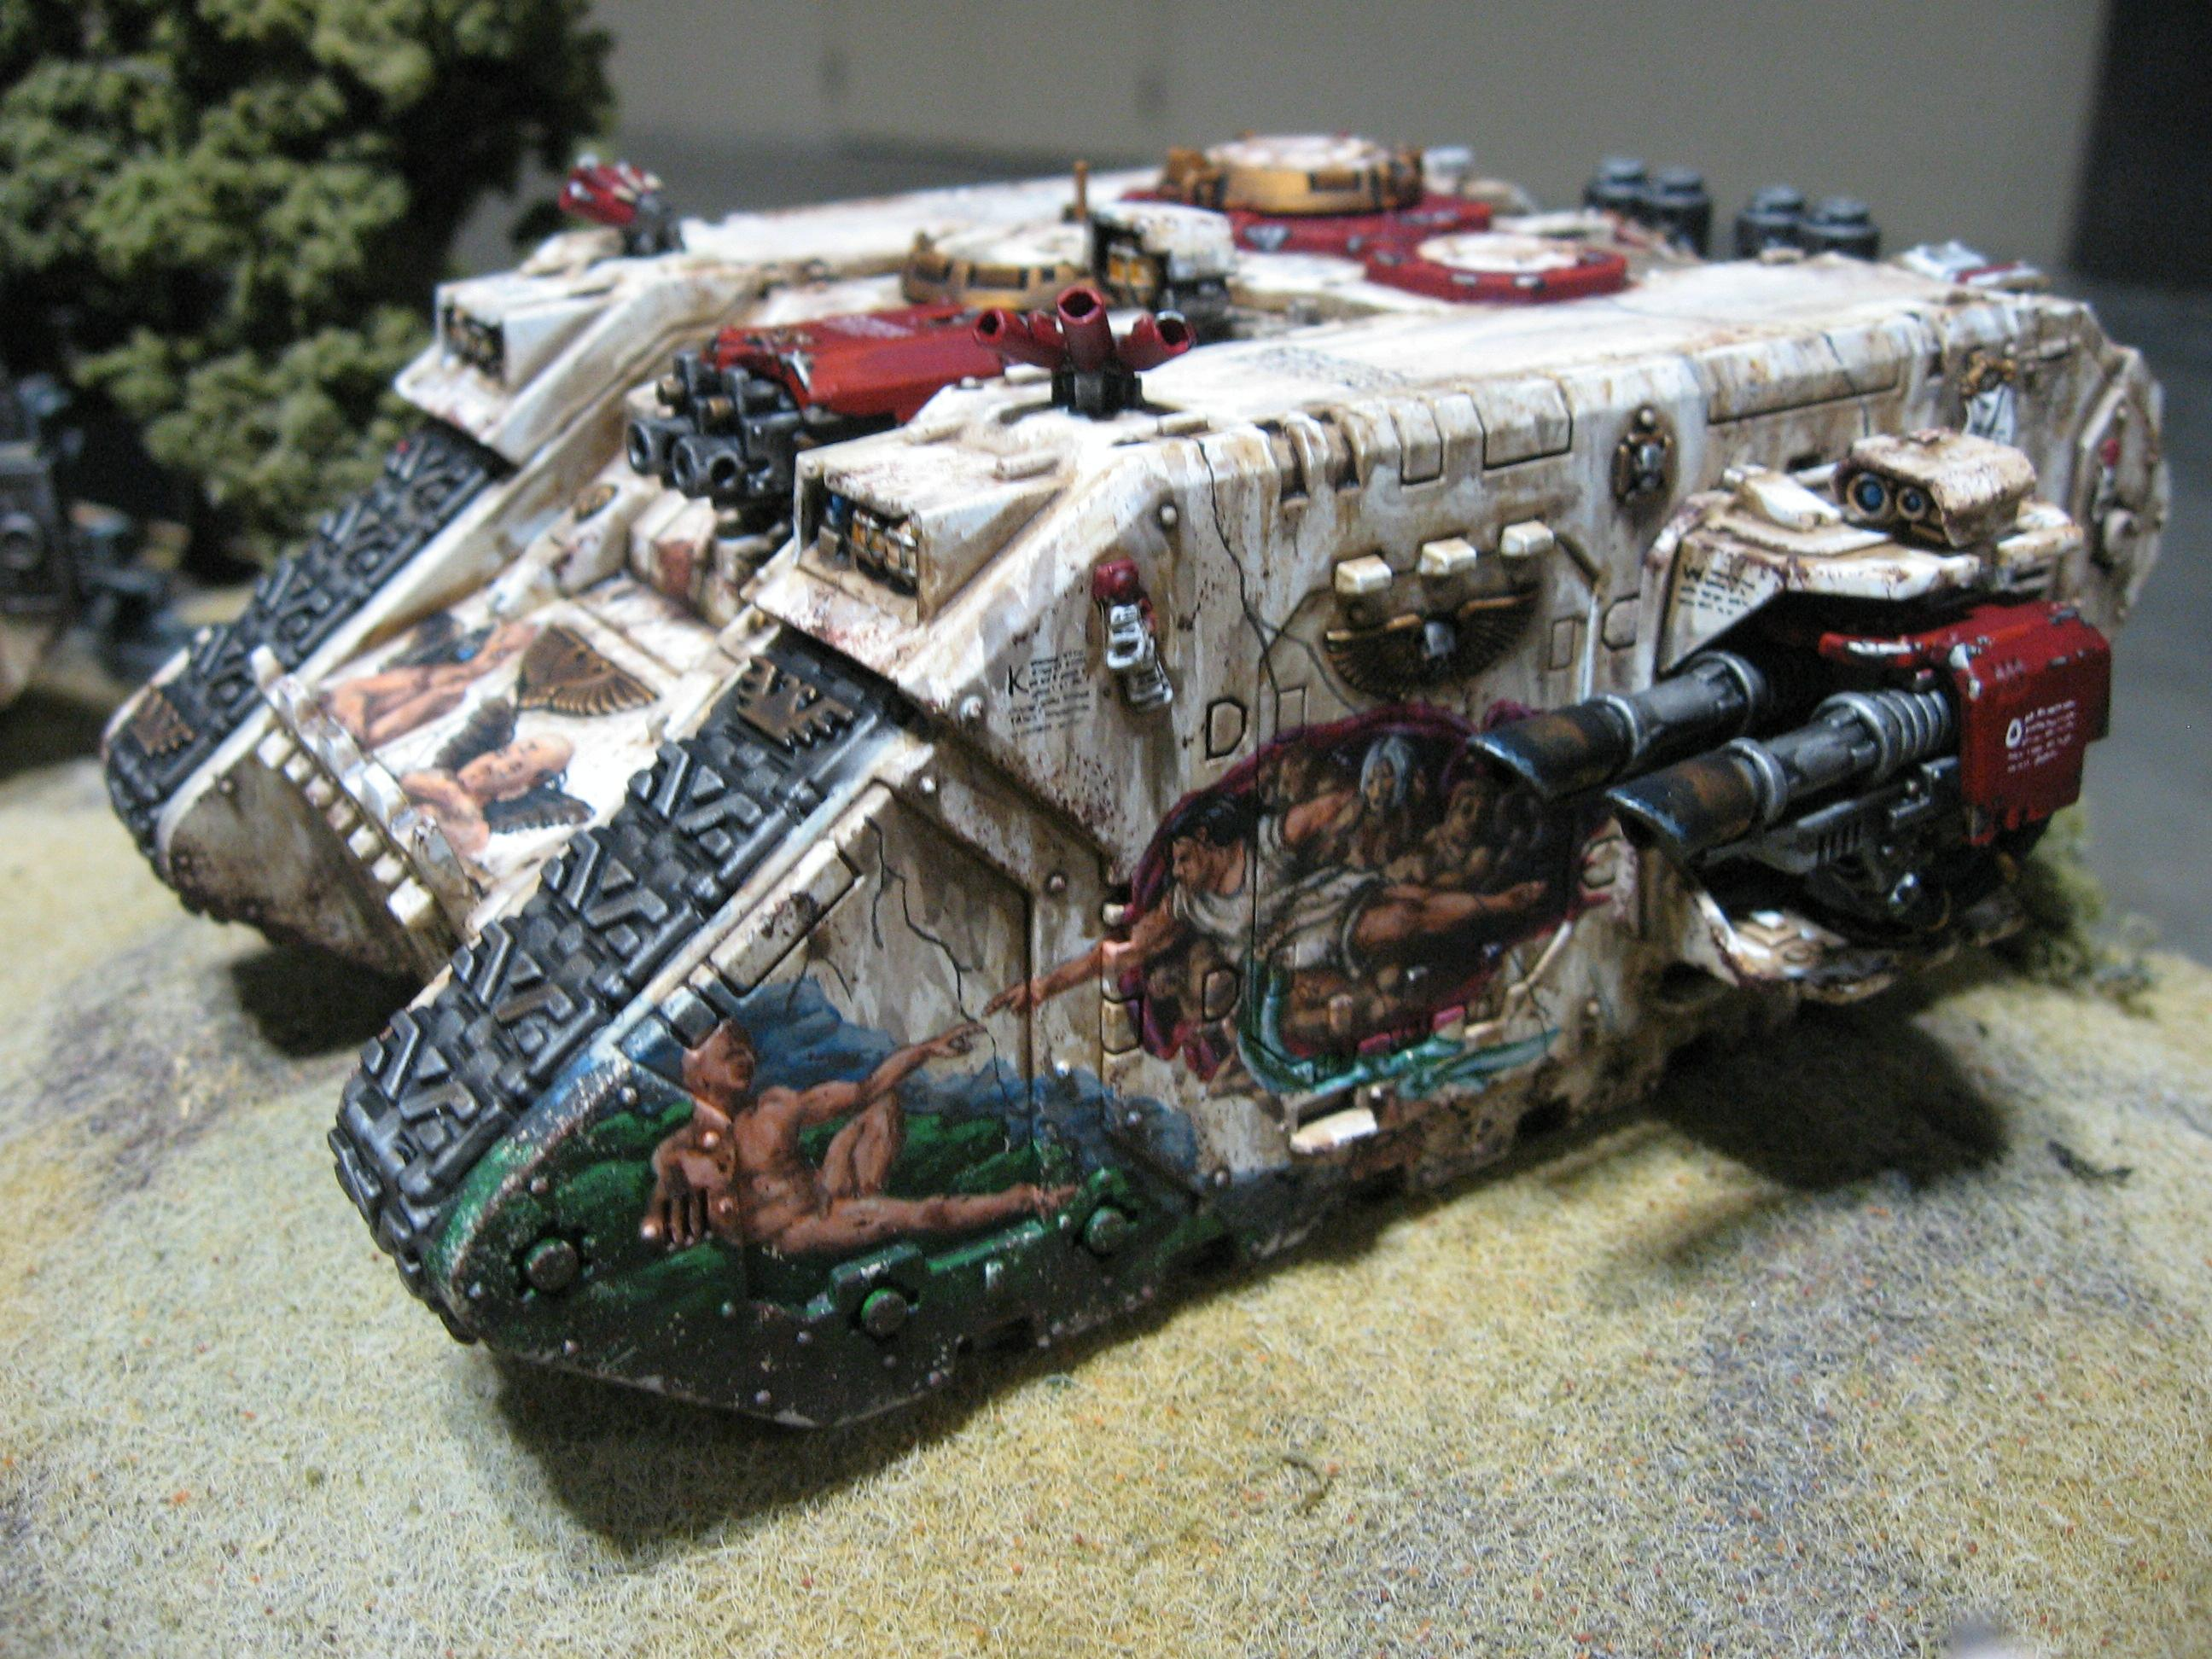 28mm, Armored Personnel Carrier, Armored Vehicle, Artwork, Freehand, Games Workshop, Heavy Support, Science-fiction, Space Marines, Tank, Warhammer 40,000